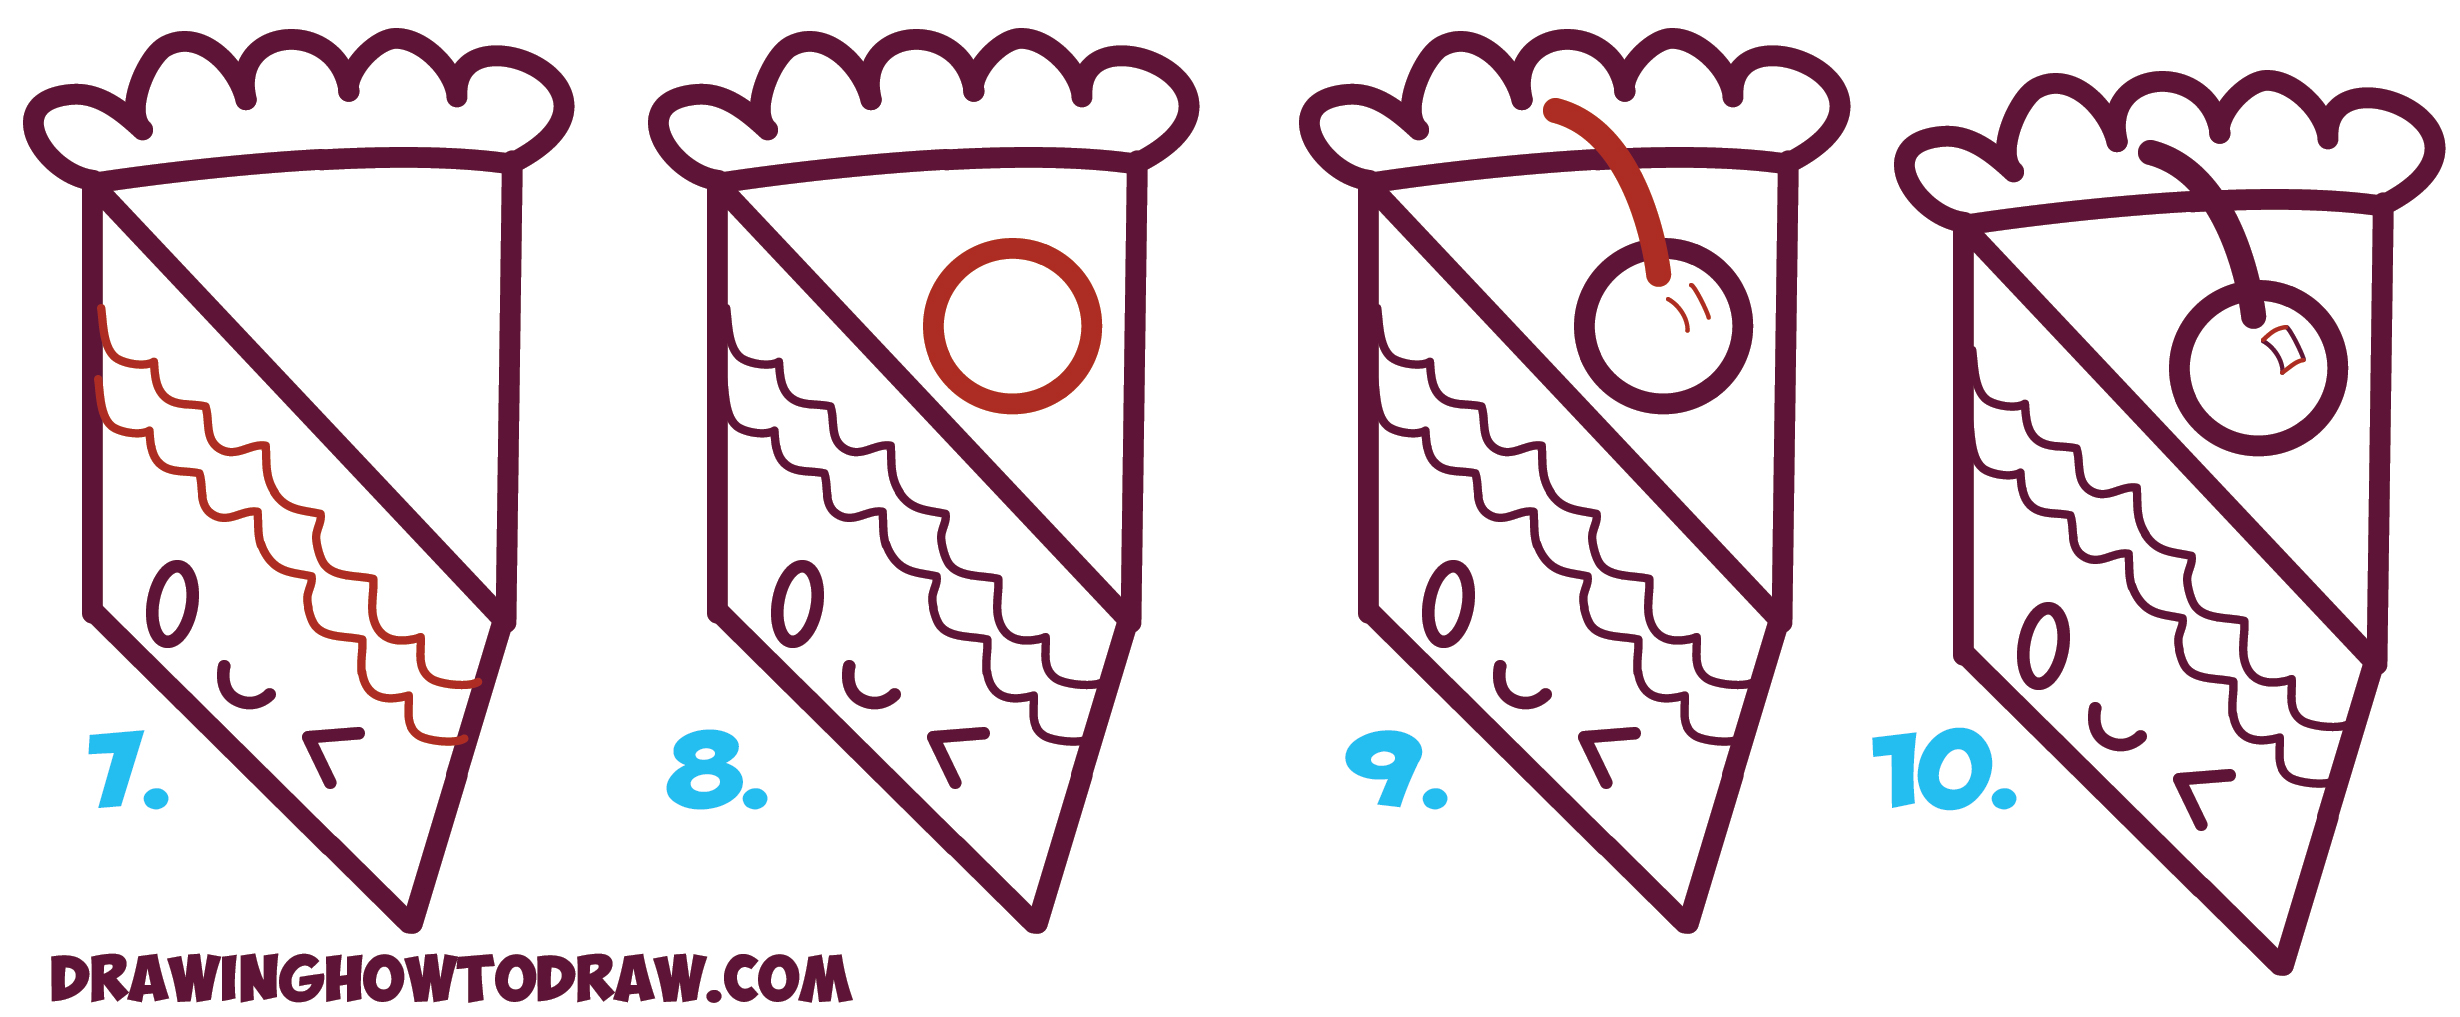 Learn How to Draw a Cute Kawaii Piece of Cake with a Face on it from the Letter 'N' Simple Steps Drawing Lesson for Beginners